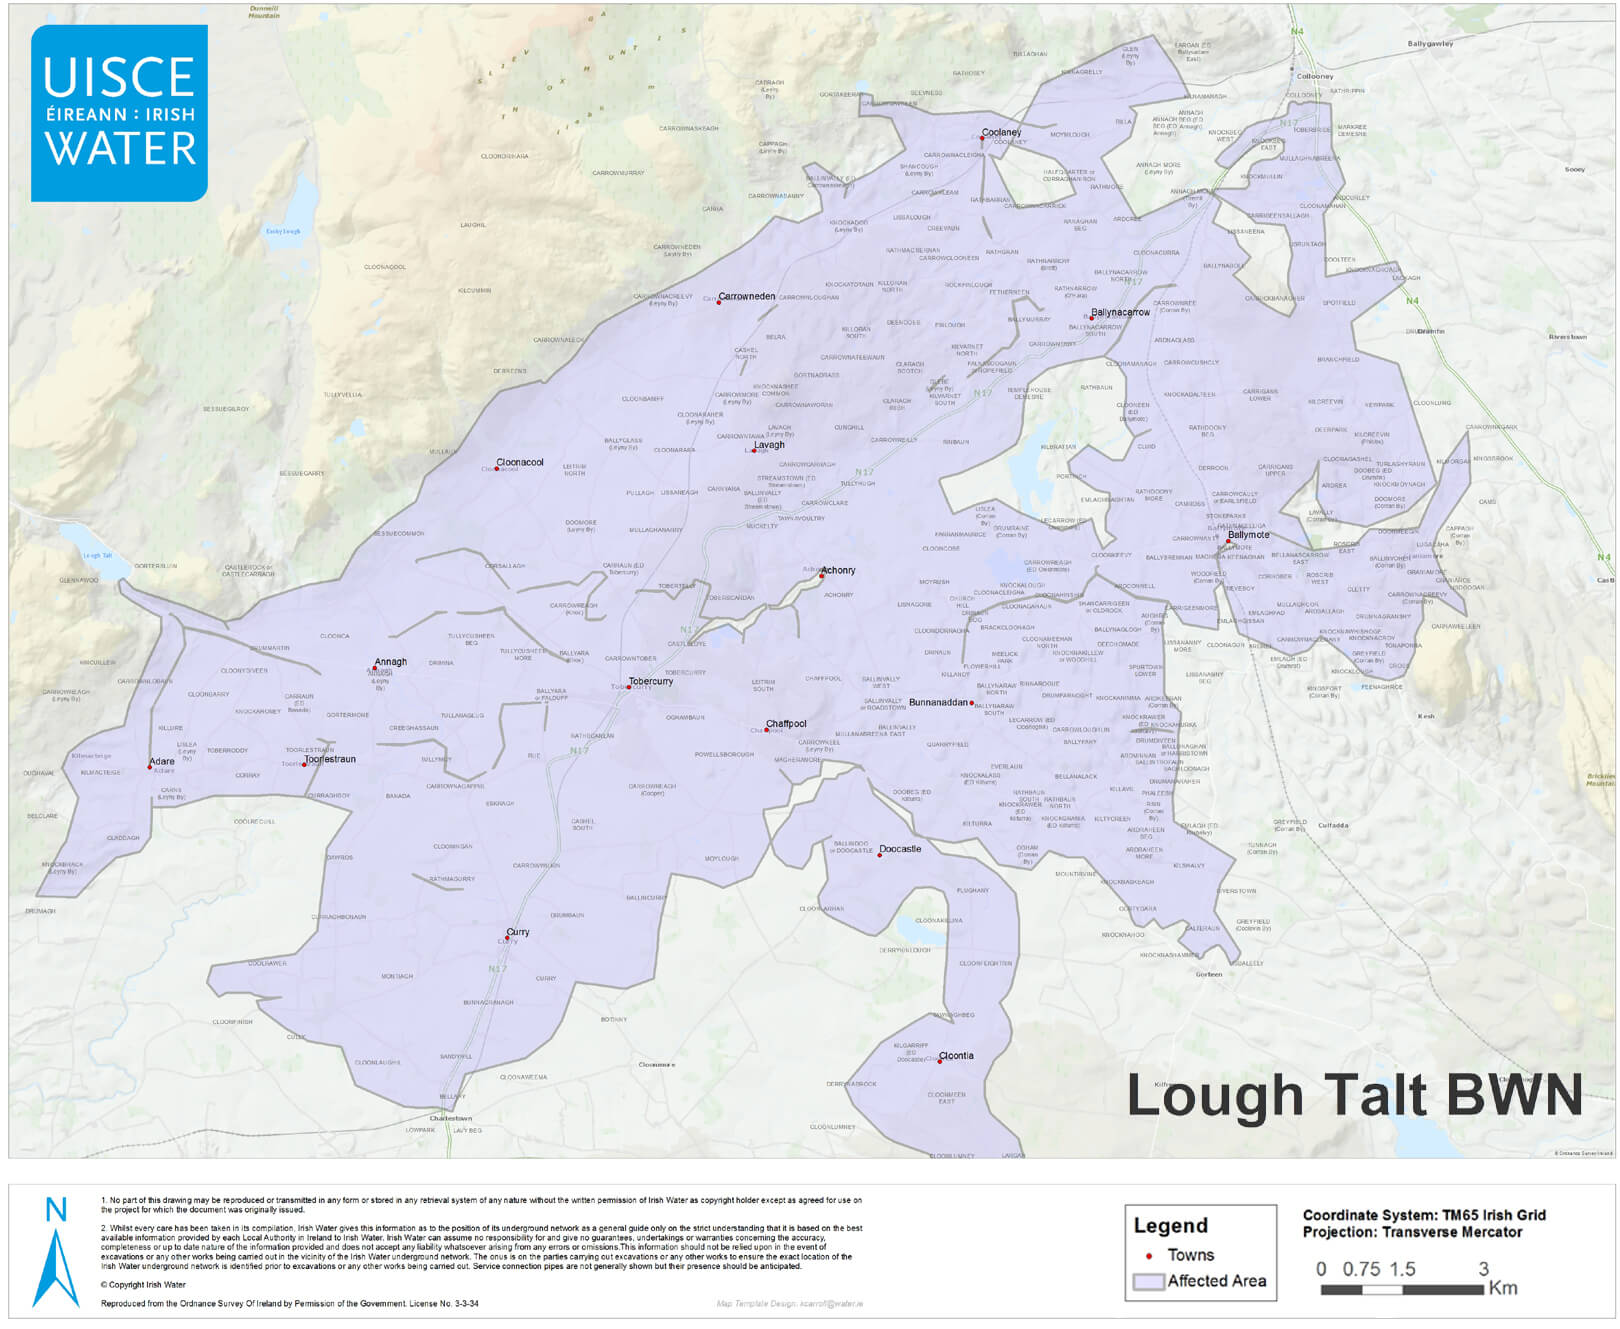 Boil Notice - Lough Talt Water Supply